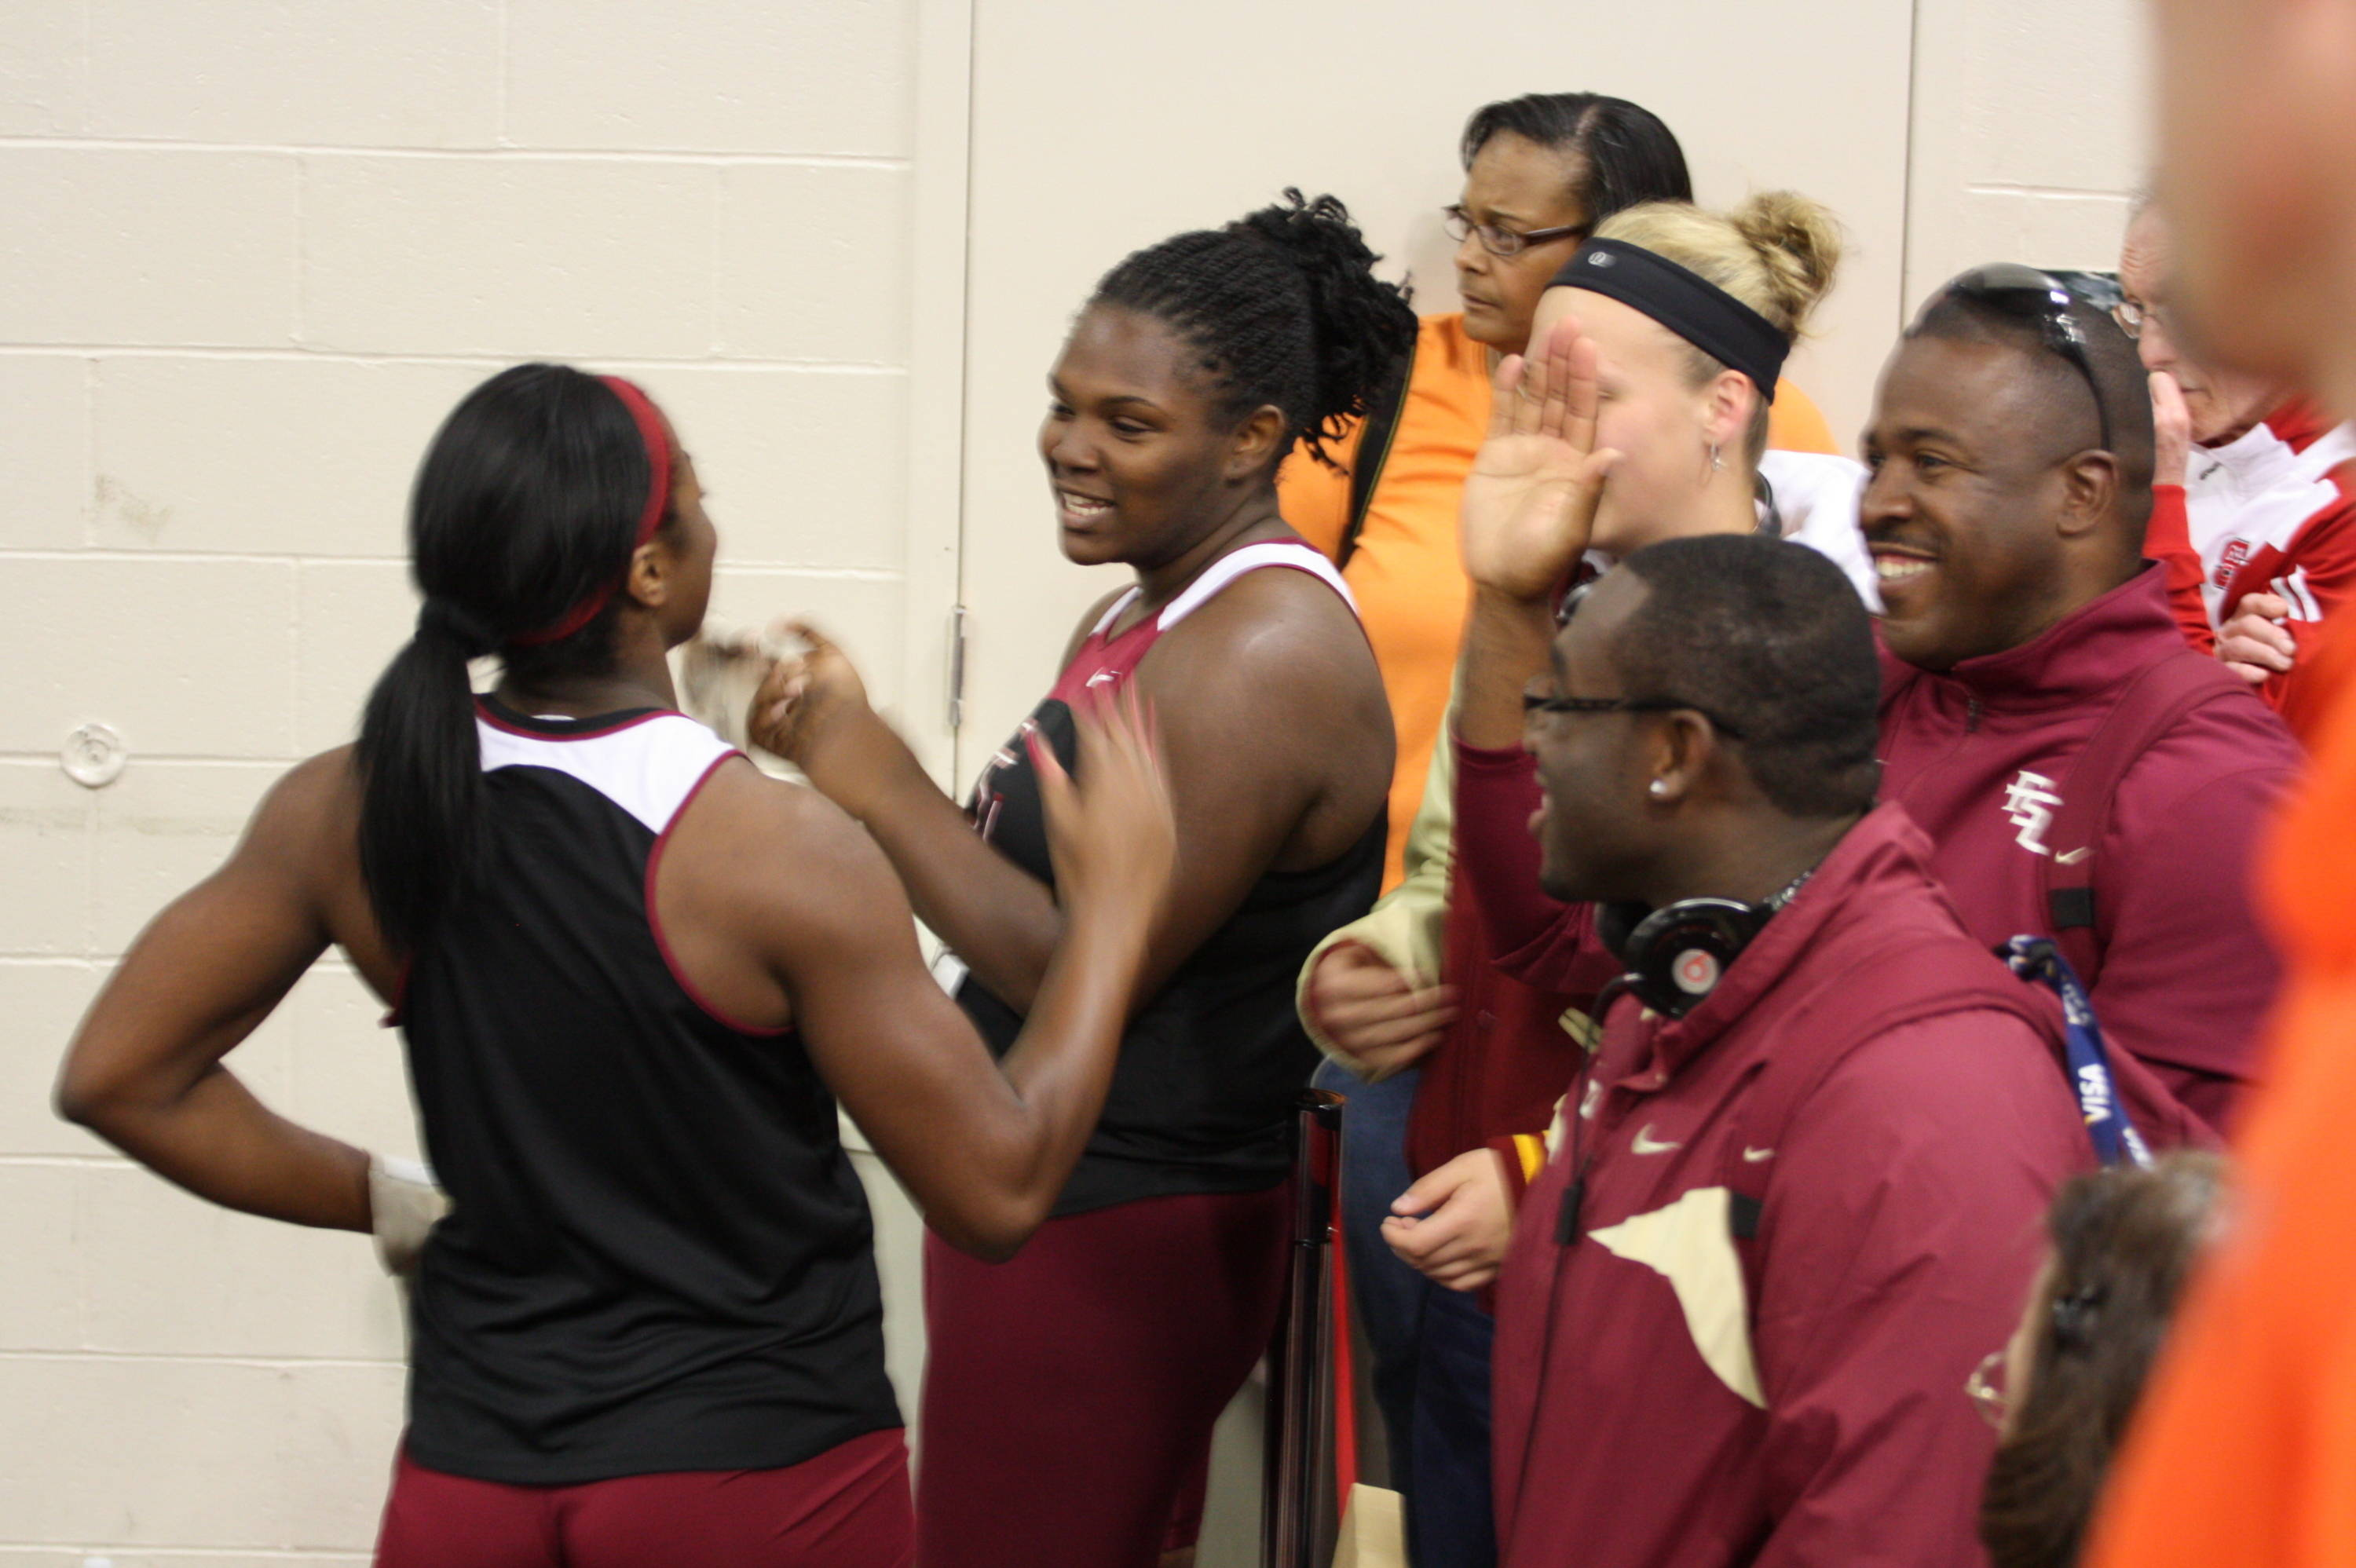 Briana Cherry-Bronson (back to camera) and Lakitta Johnson placed in the weight throw with personal-bests, then celebrated with coach Harlis Meaders and teammates.